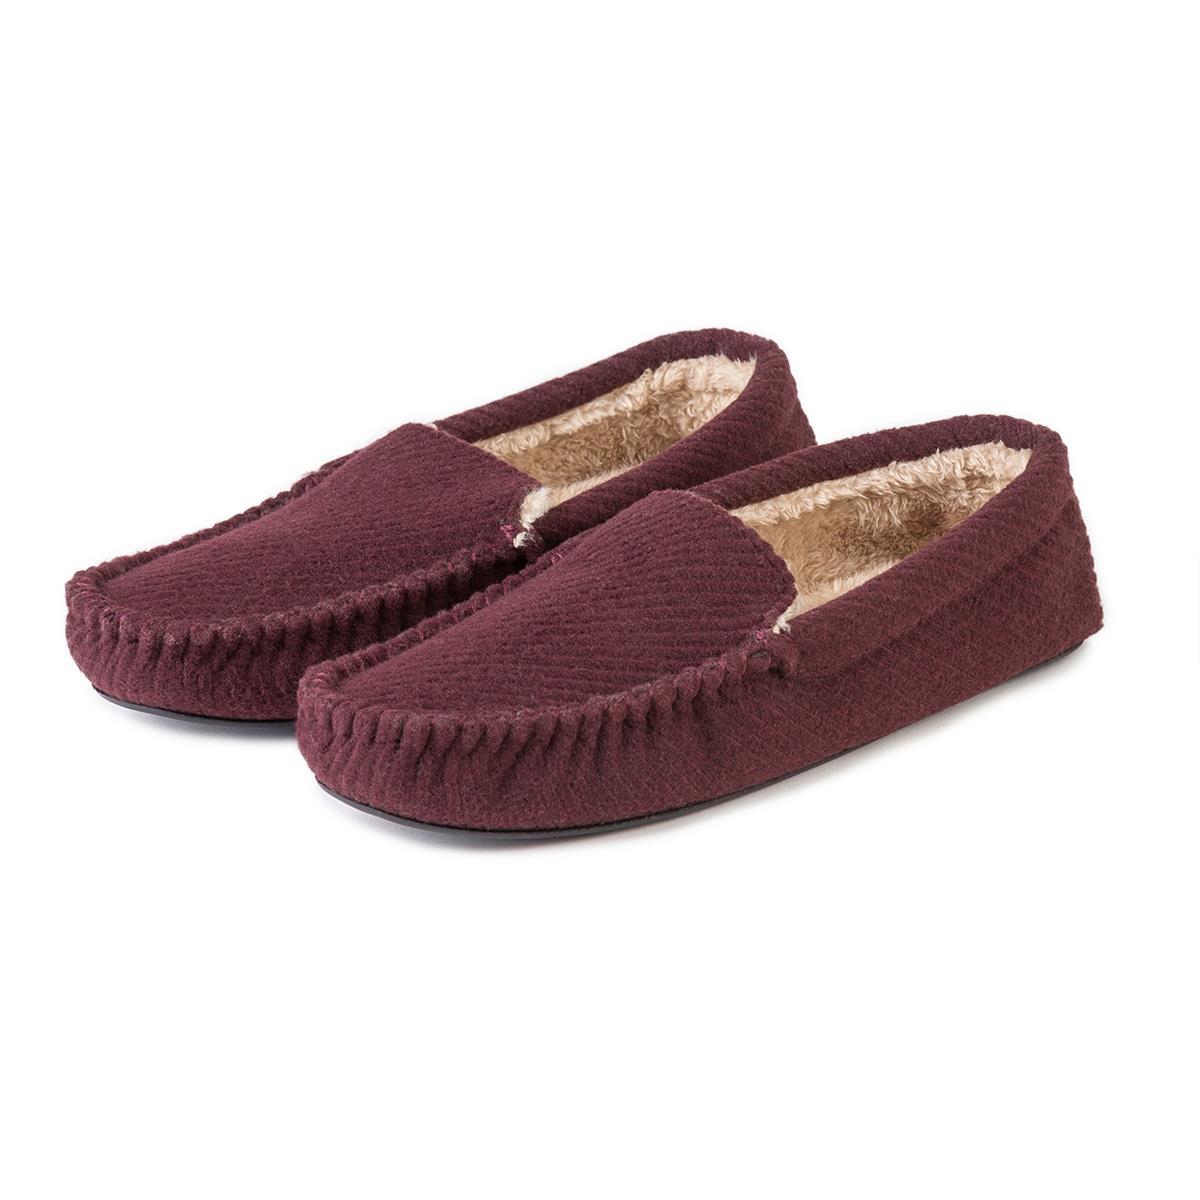 d02bd6cf353b totes Mens Textured Moccasin Slippers Burgundy